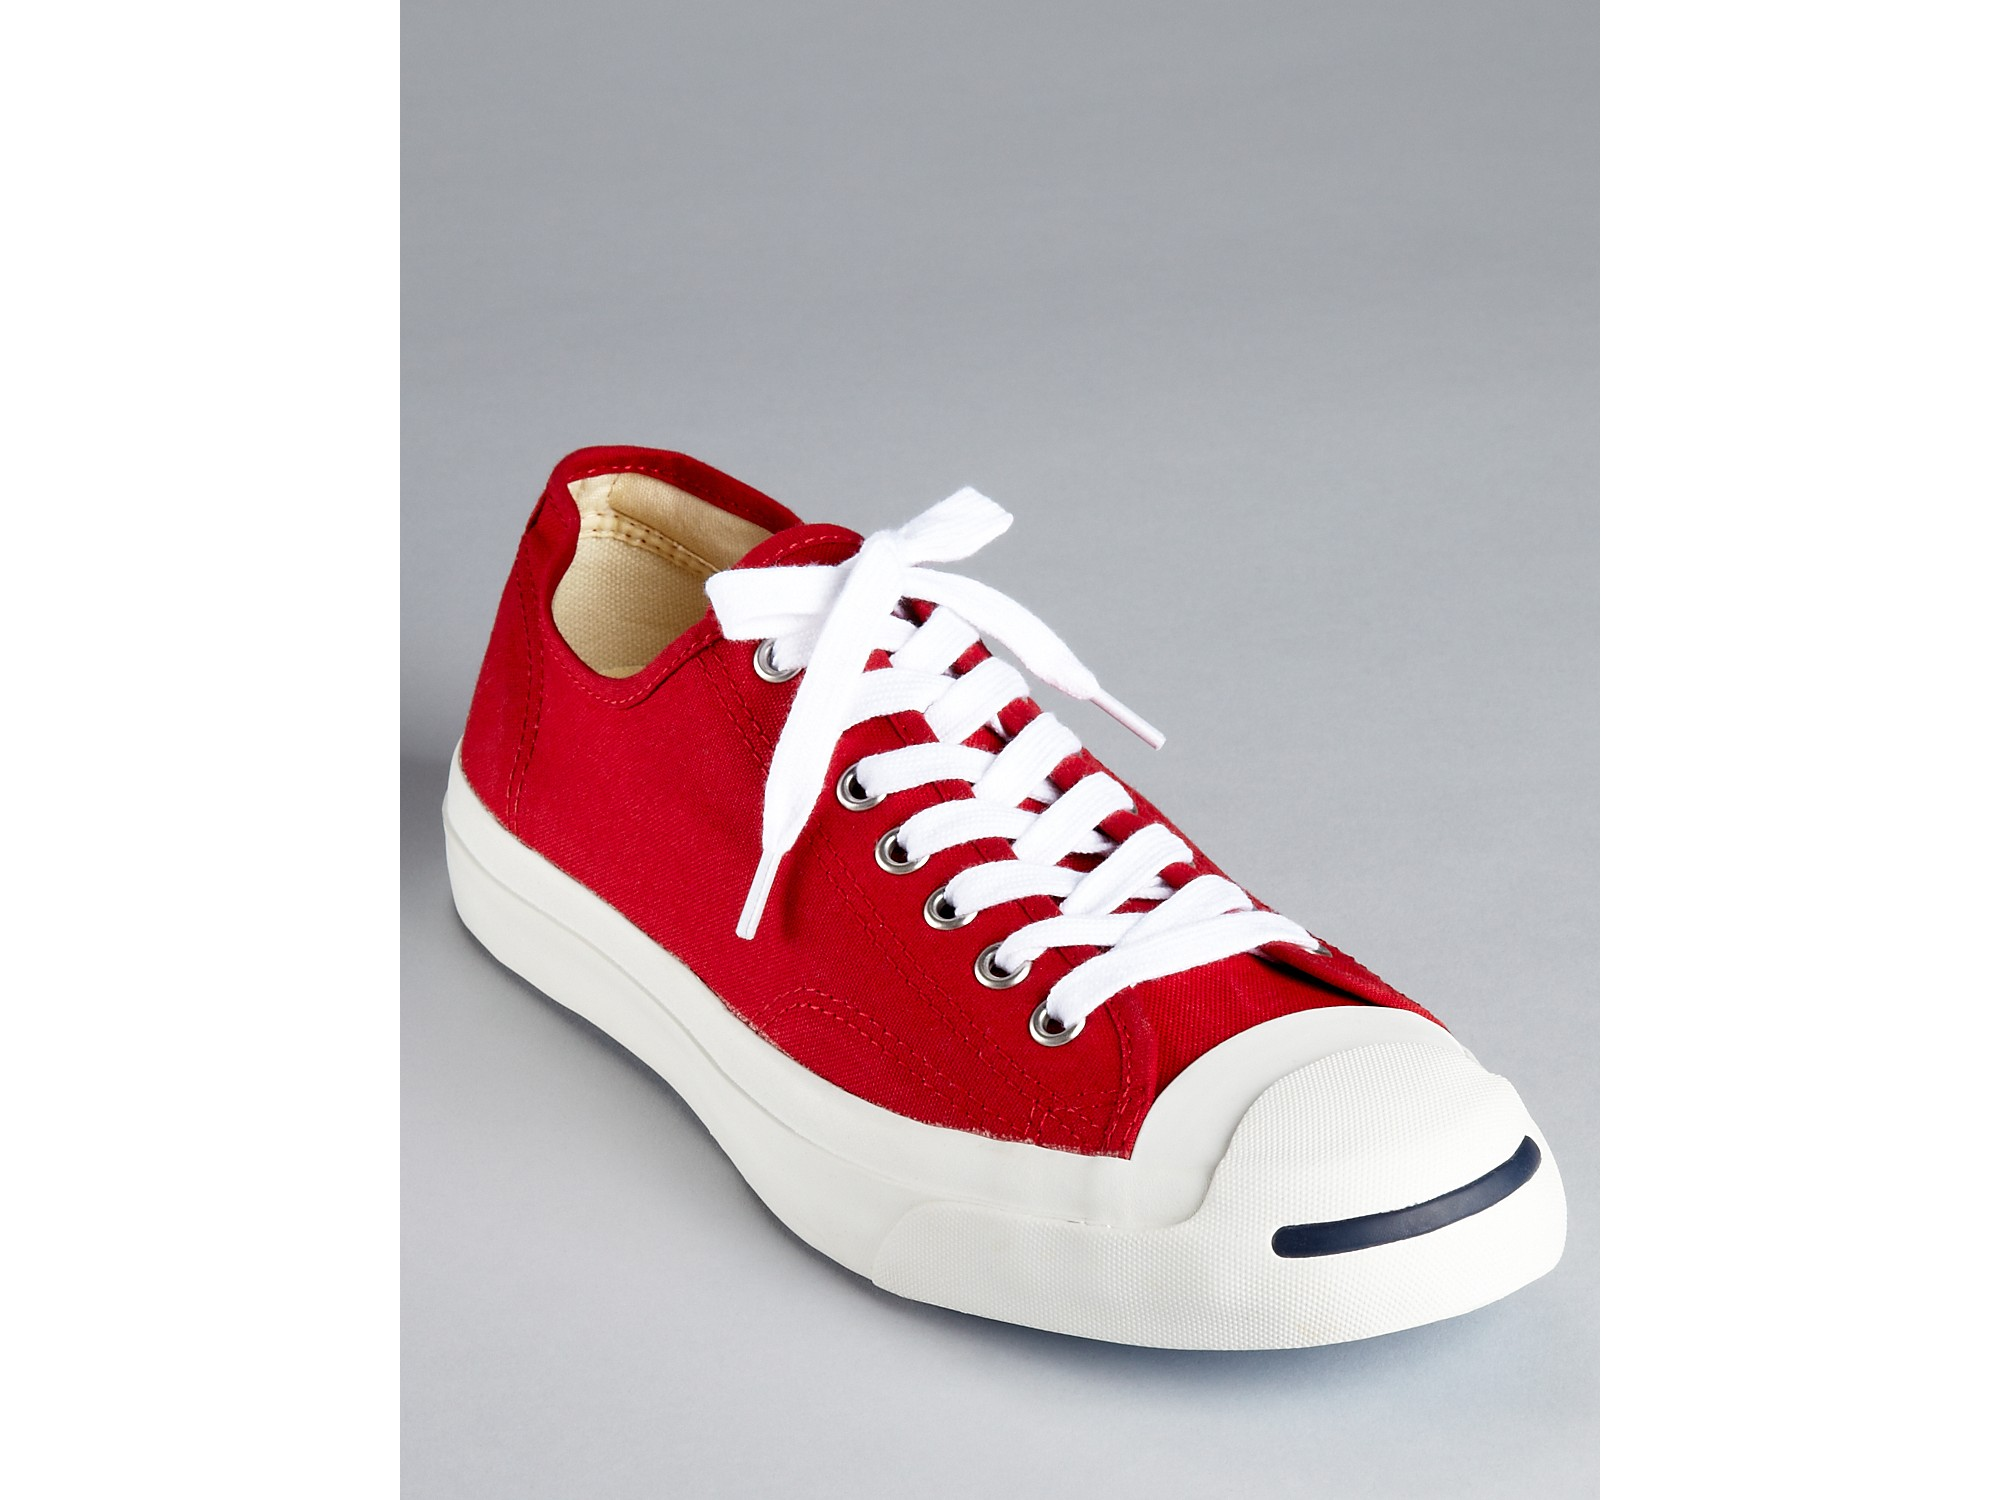 ... cheapest lyst converse jack purcell ltt sneakers in red for men f6b66  908b0 bbee996e5